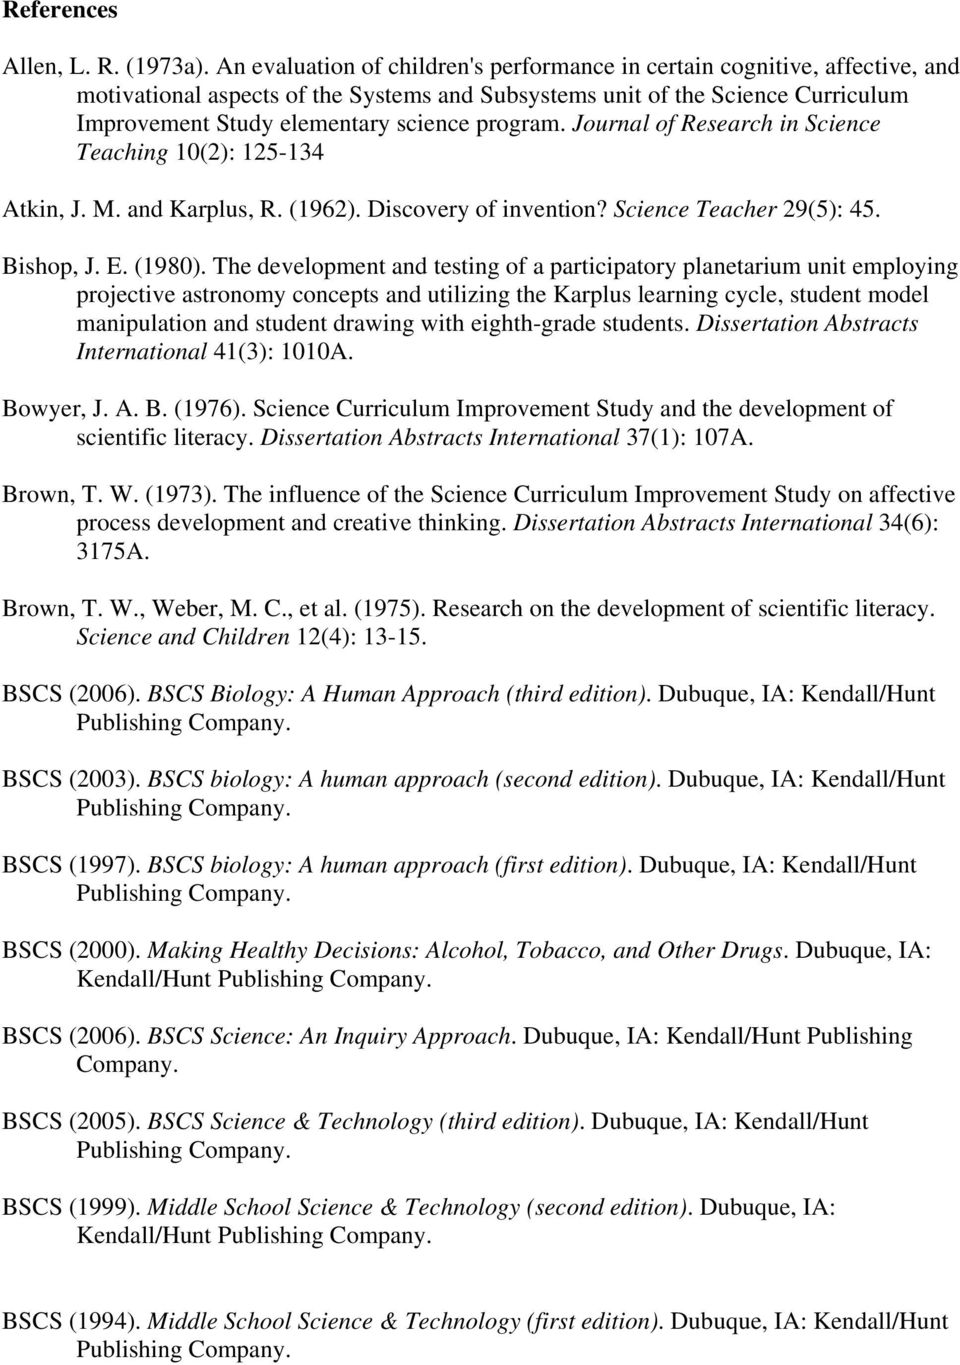 program. Journal of Research in Science Teaching 10(2): 125-134 Atkin, J. M. and Karplus, R. (1962). Discovery of invention? Science Teacher 29(5): 45. Bishop, J. E. (1980).